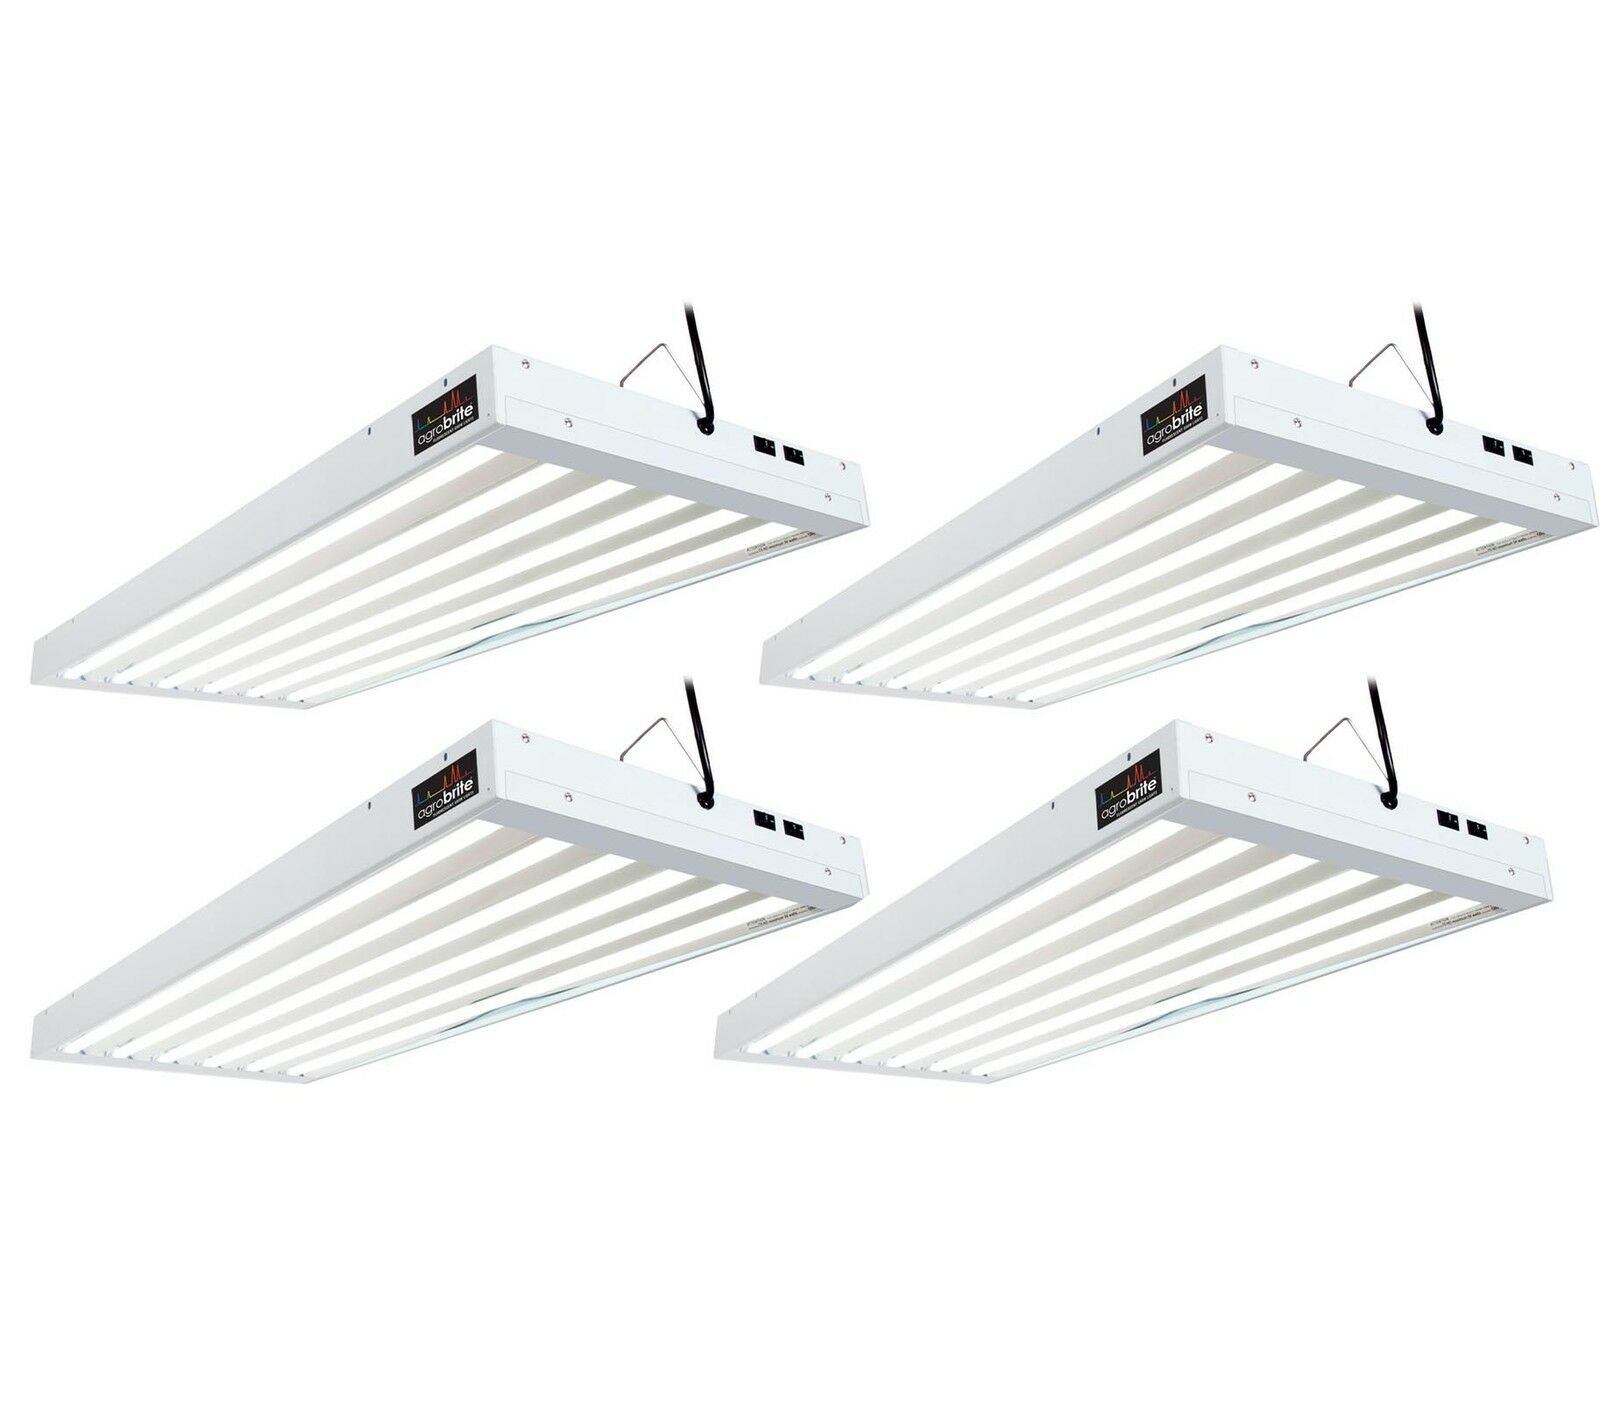 4 hydrofarm flt46 ho t5 4 ft 6 tube fluorescent light fixtures w picture 1 of 3 arubaitofo Image collections